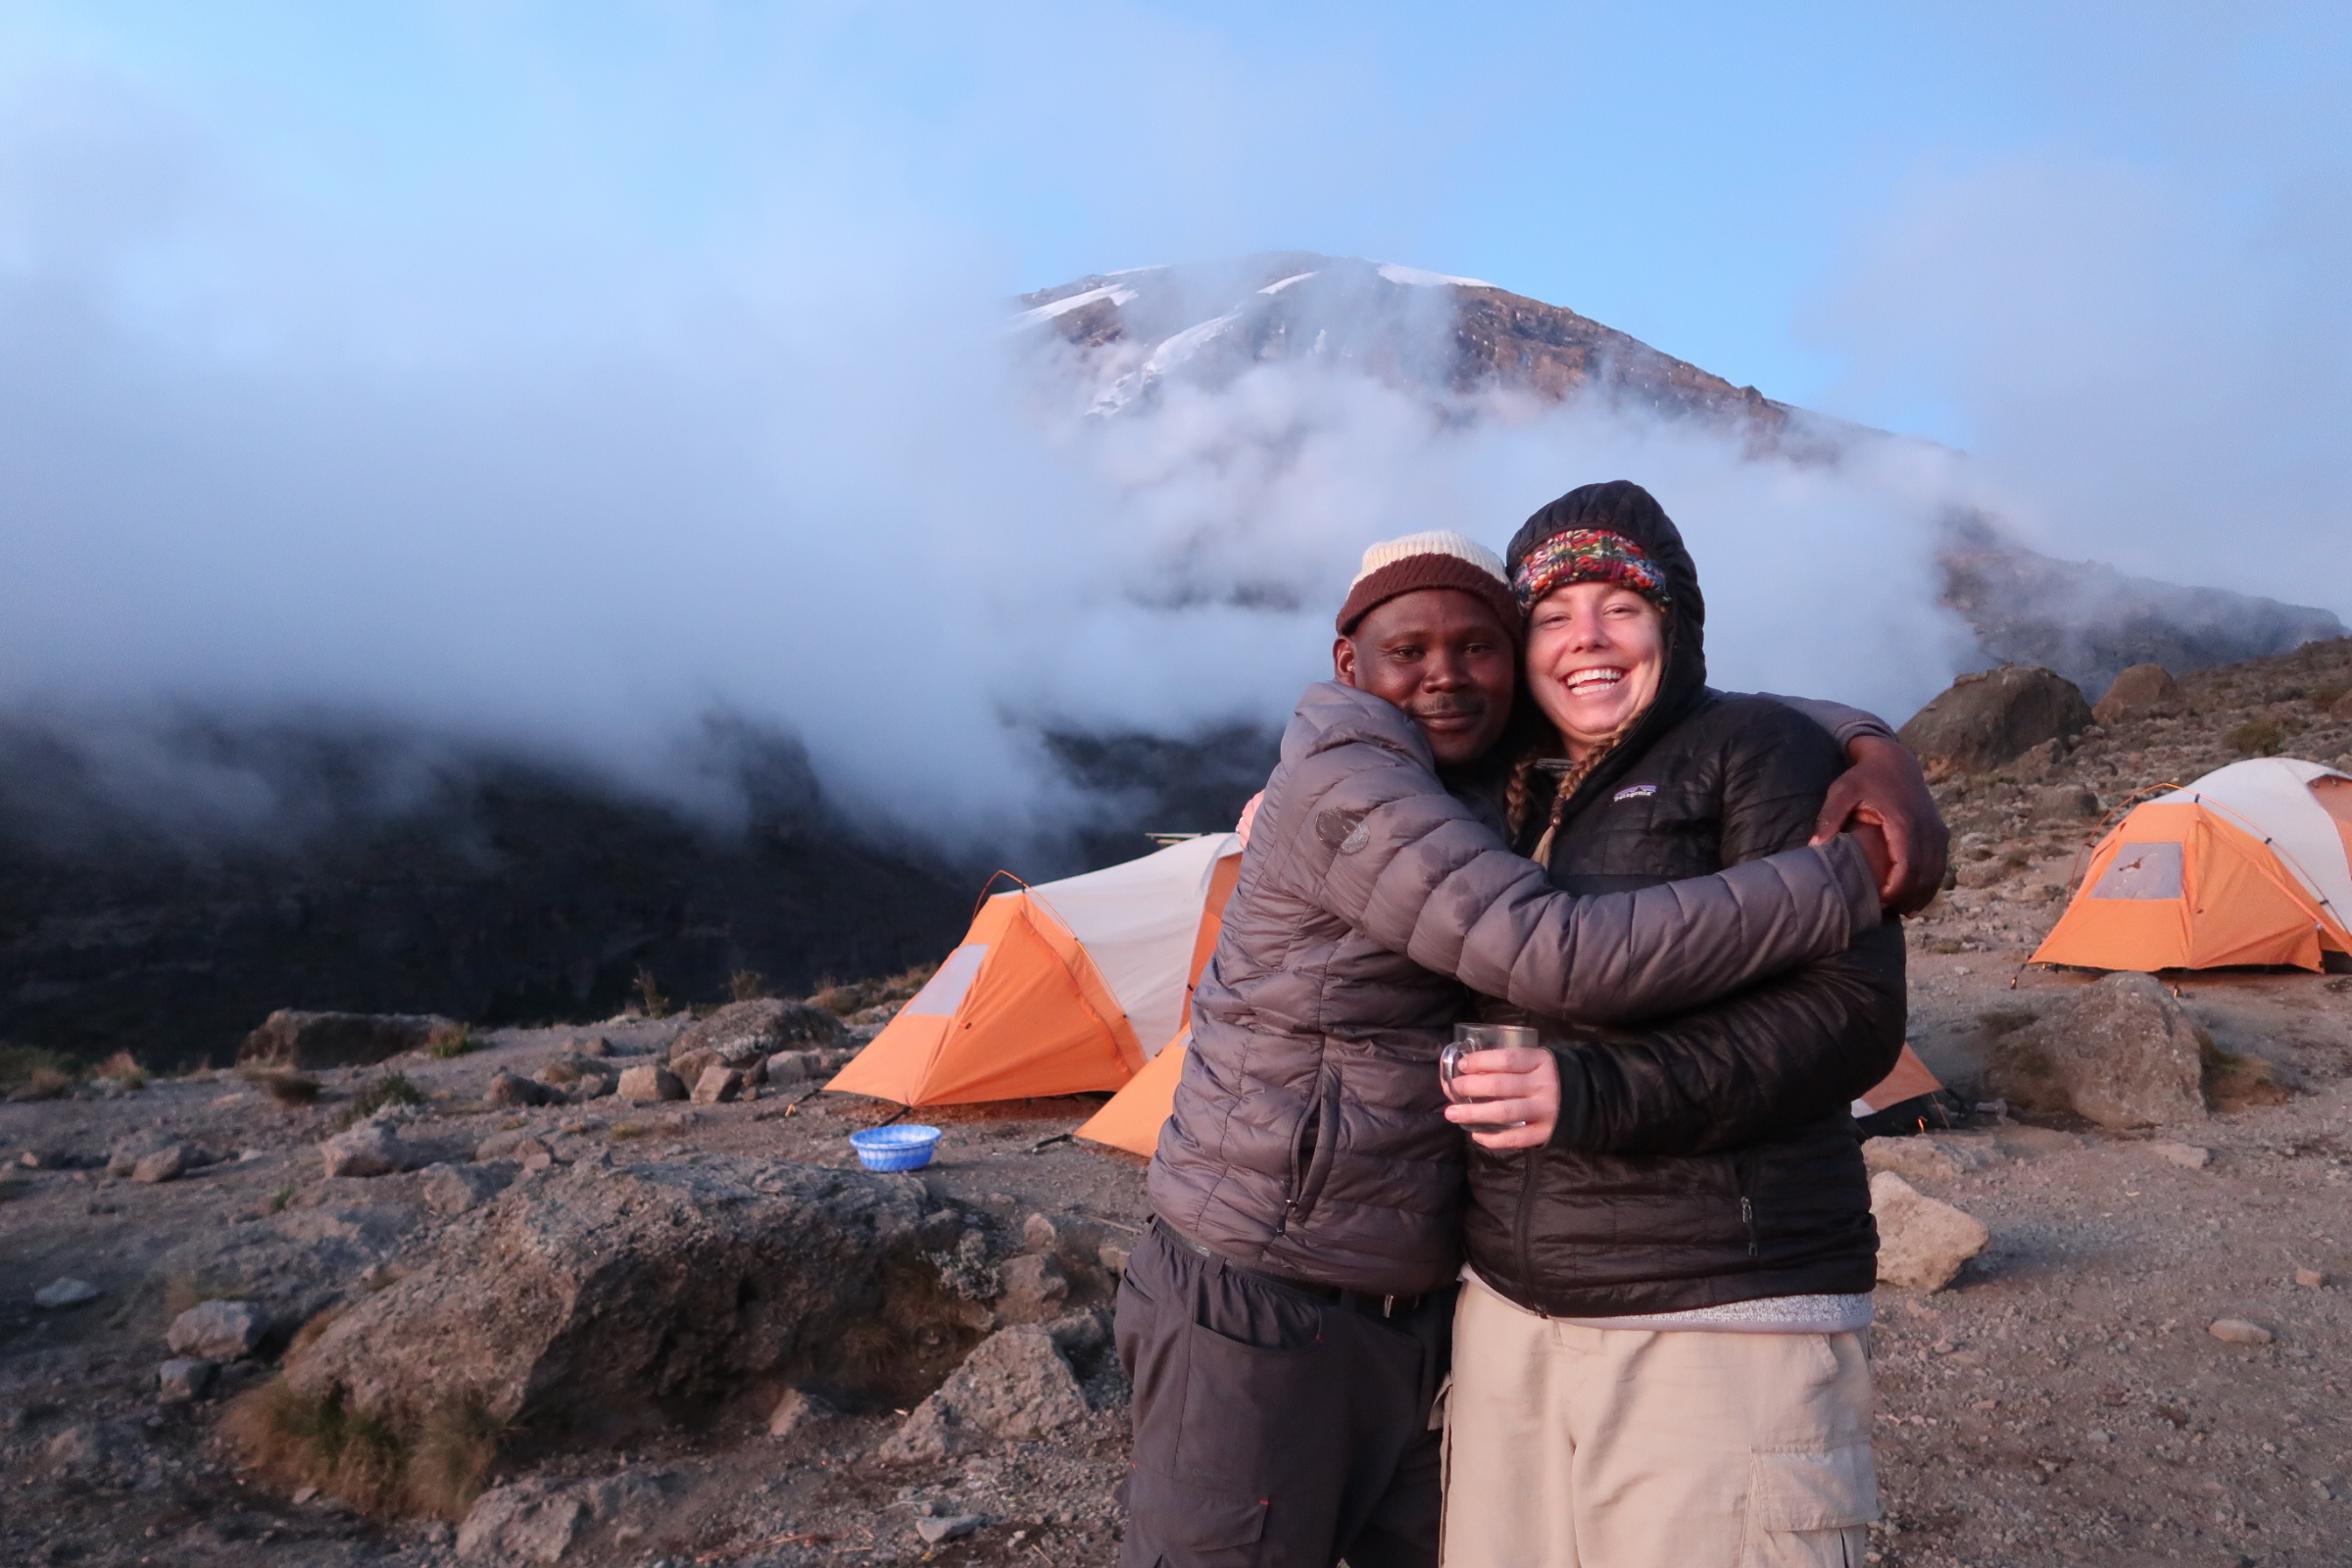 Prosper and me at Karanga camp at 3,900m. Kili made a quick appearance and then went back to hiding behind the clouds.